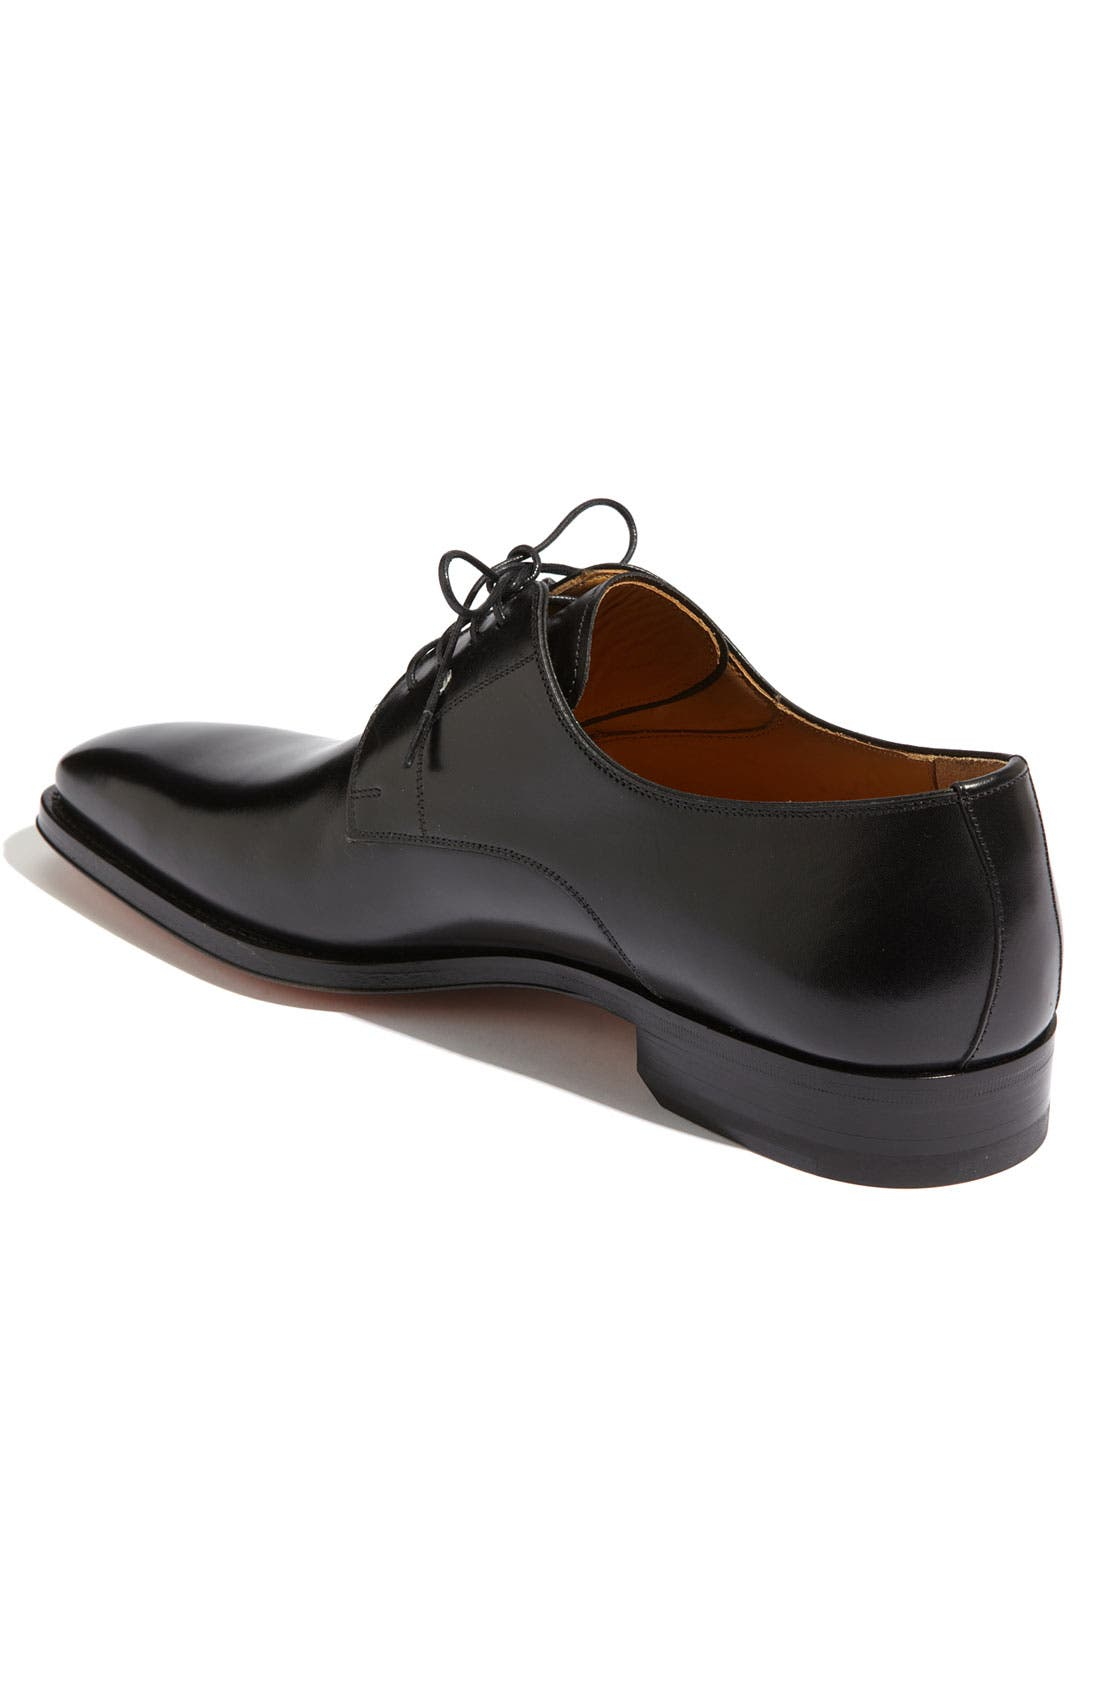 Alternate Image 2  - Magnanni 'Colo' Plain Toe Derby (Men)